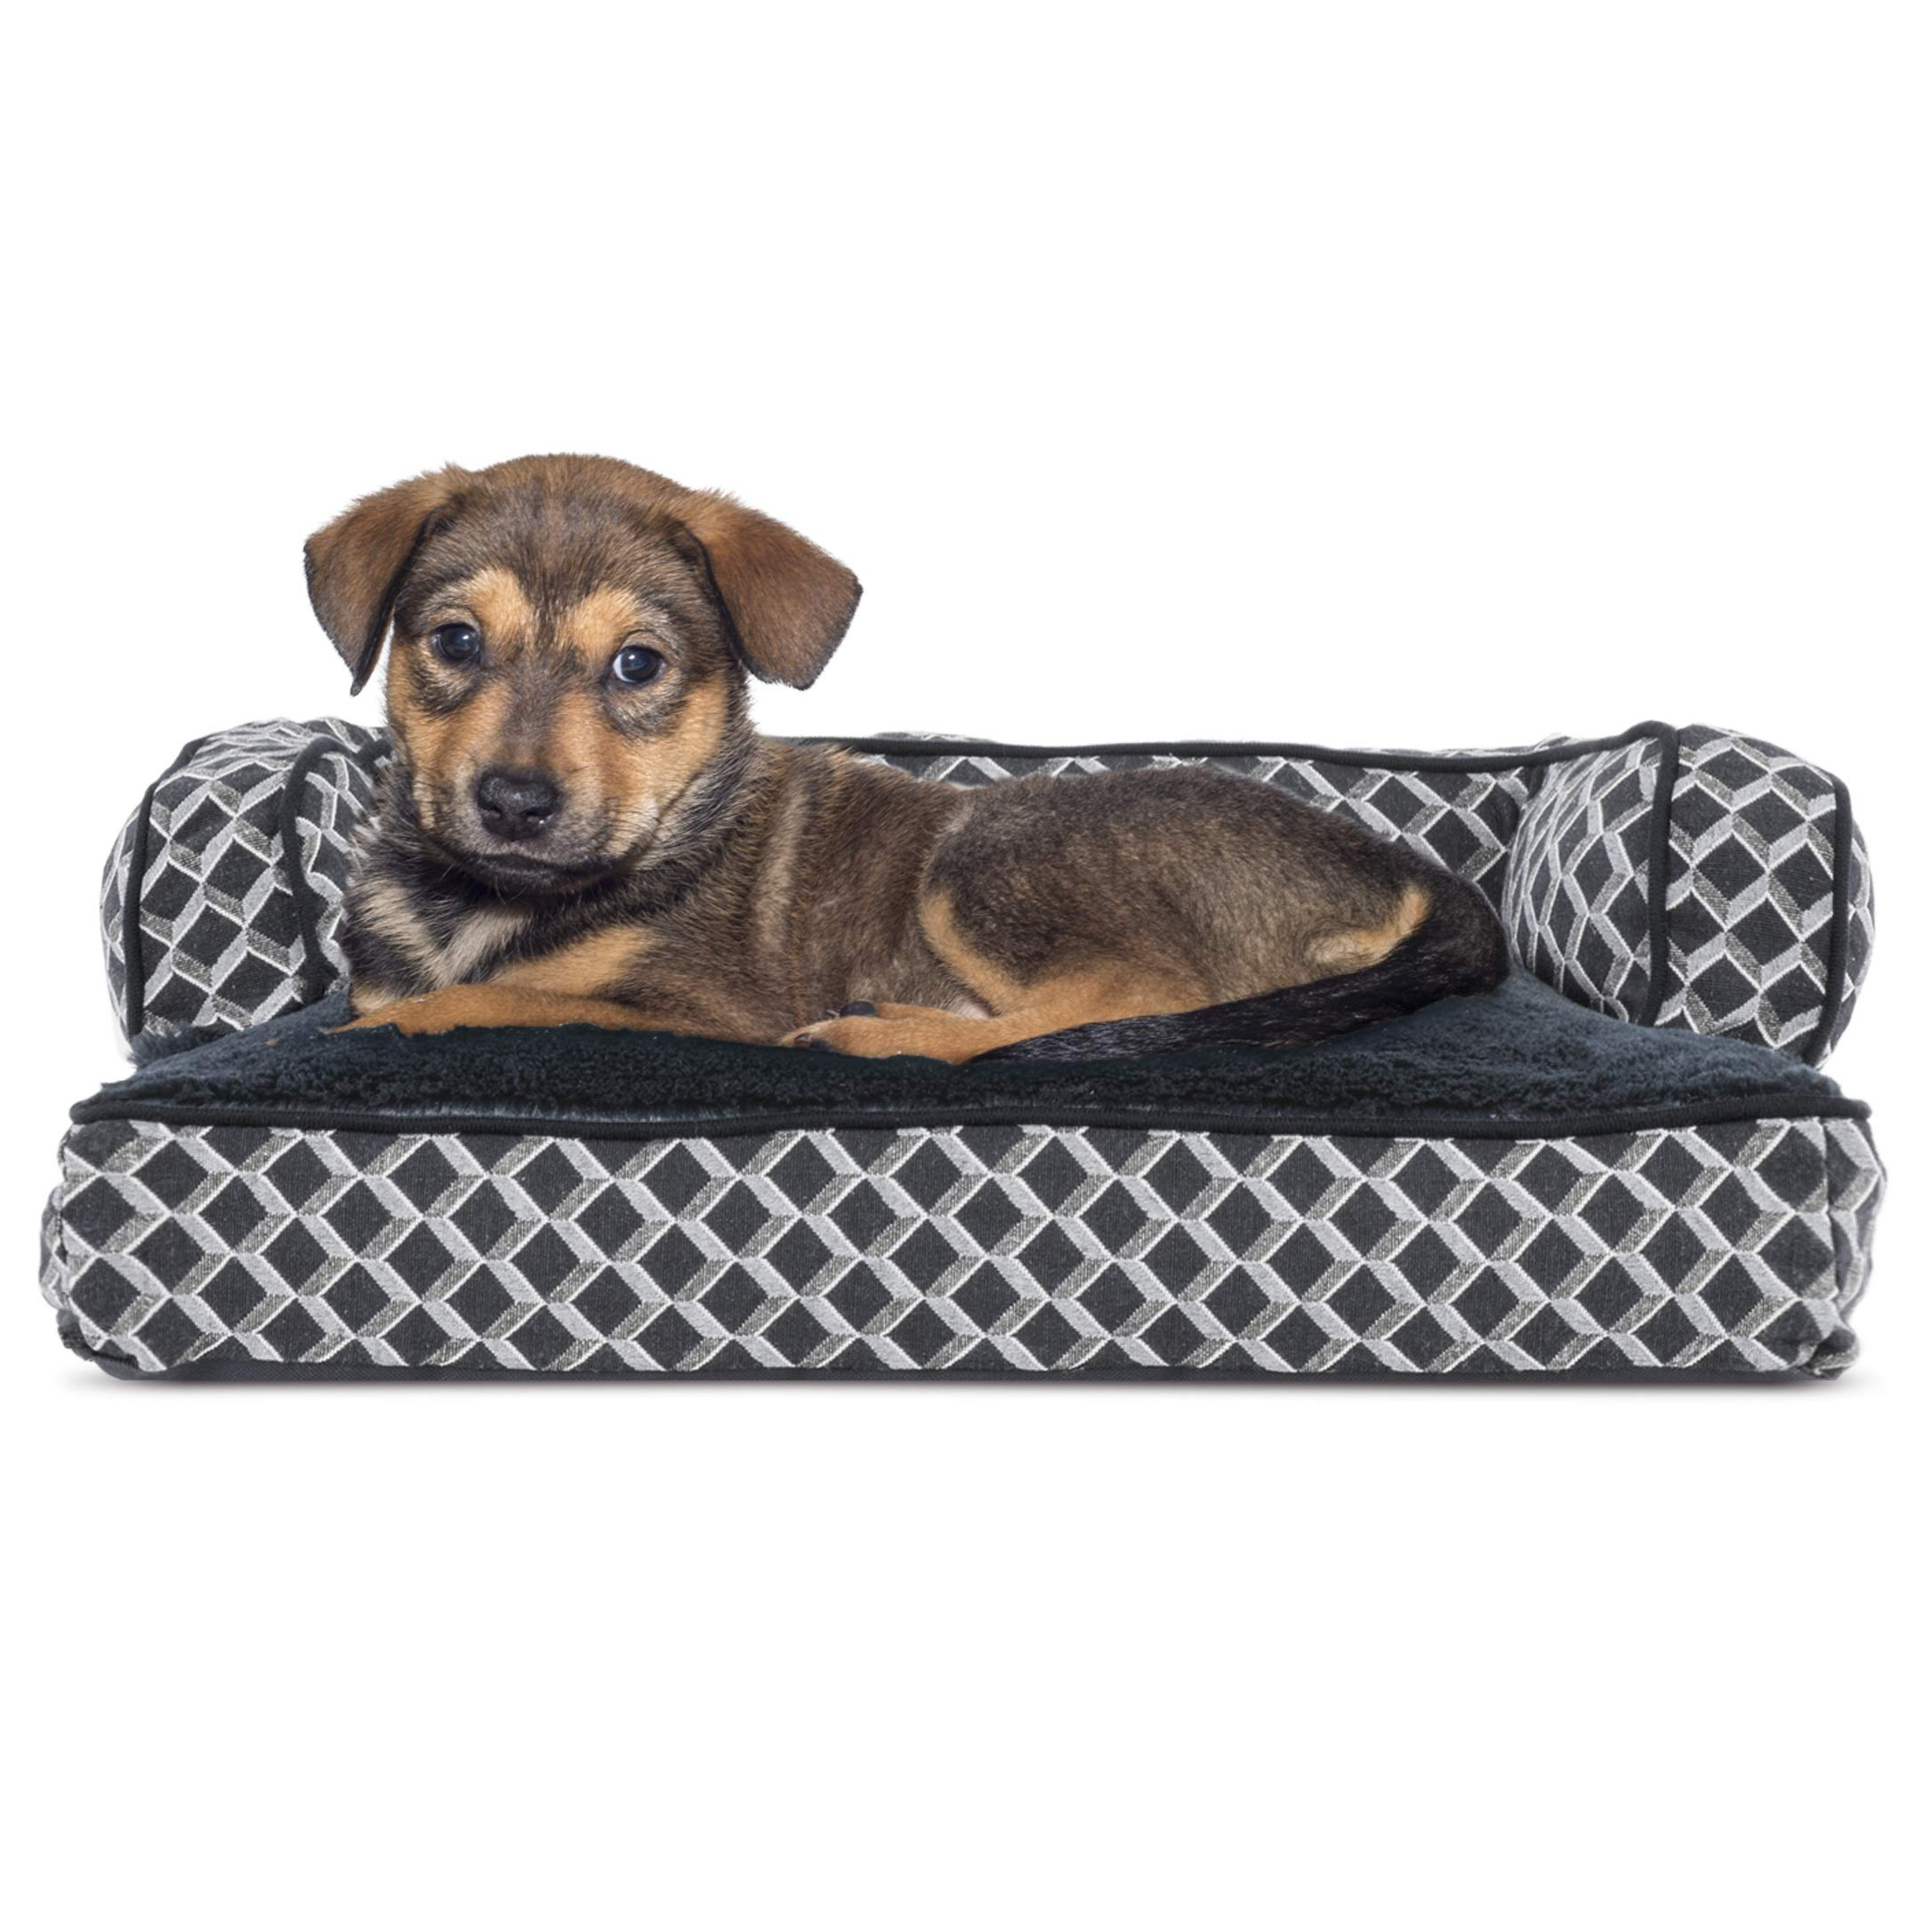 Furhaven Pet Dog Bed - Traditional Fiberfill Cushion Sofa-Style Living Room Couch Pet Bed with Removable Cover for Dogs & Cats - Available in Multiple Colors & Styles